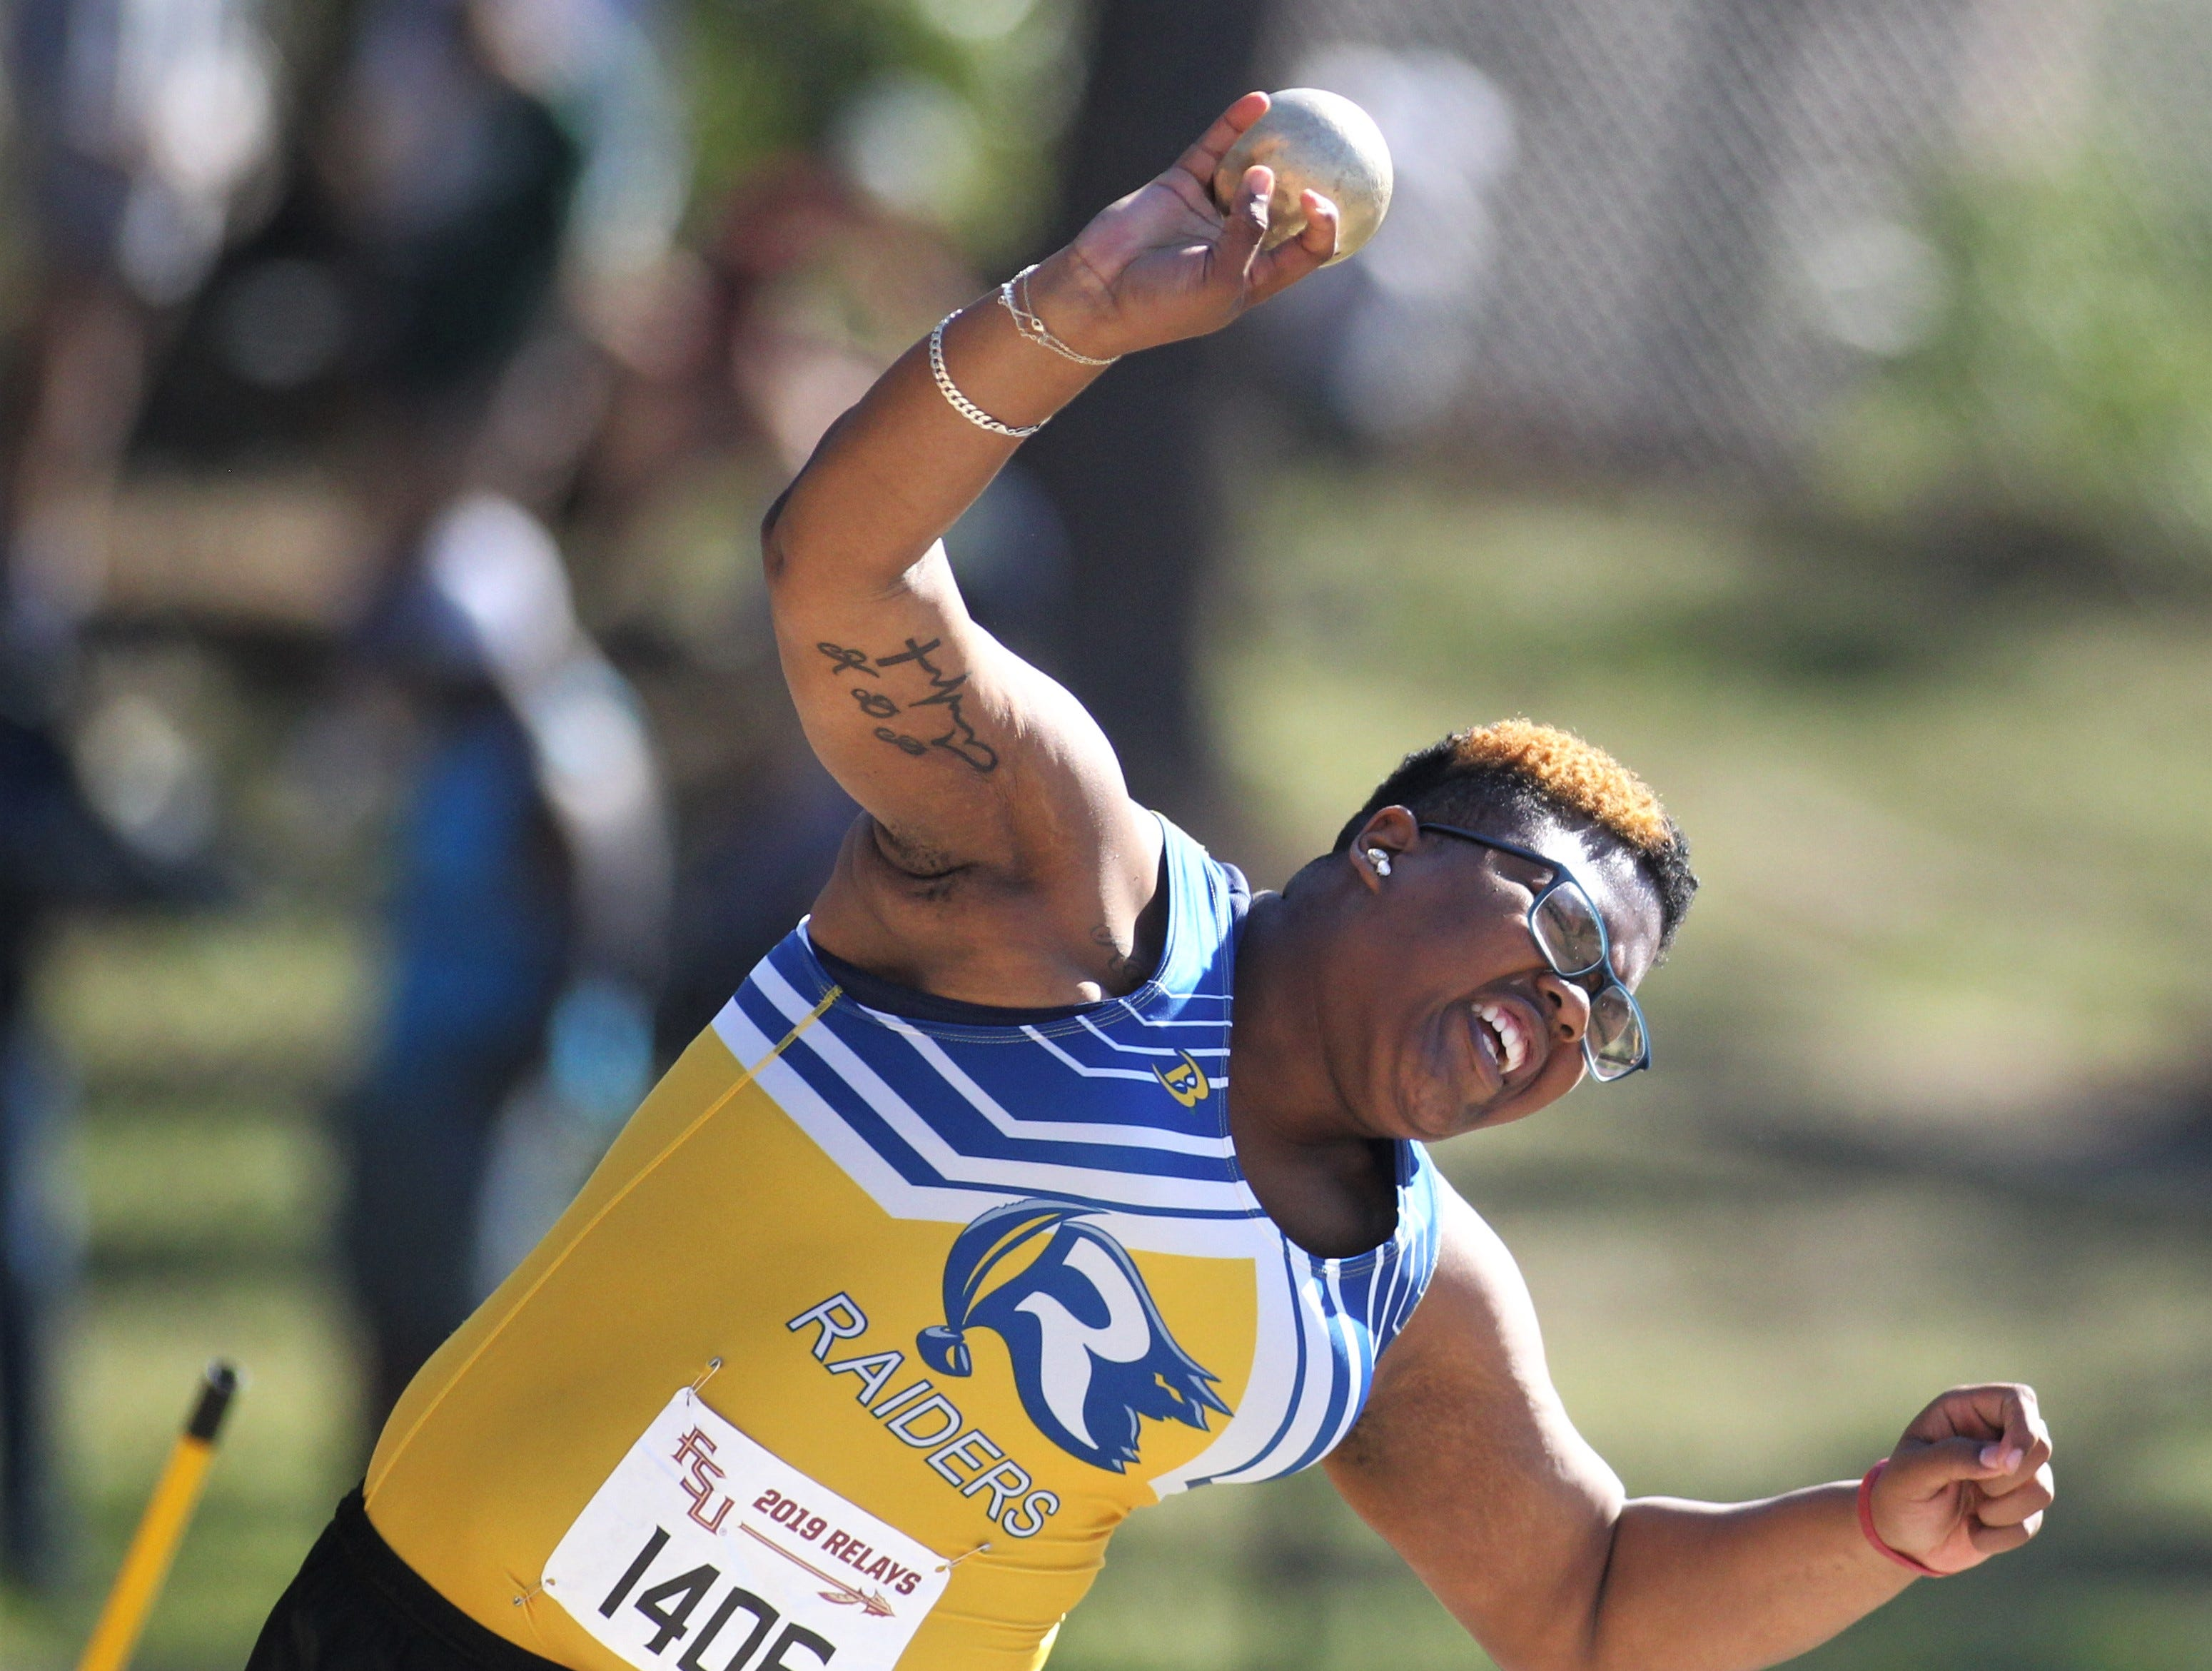 Rickards junior Kantenesha Peters throws shot put during the 40th annual FSU Relays at Mike Long Track on Saturday, March 23, 2019.